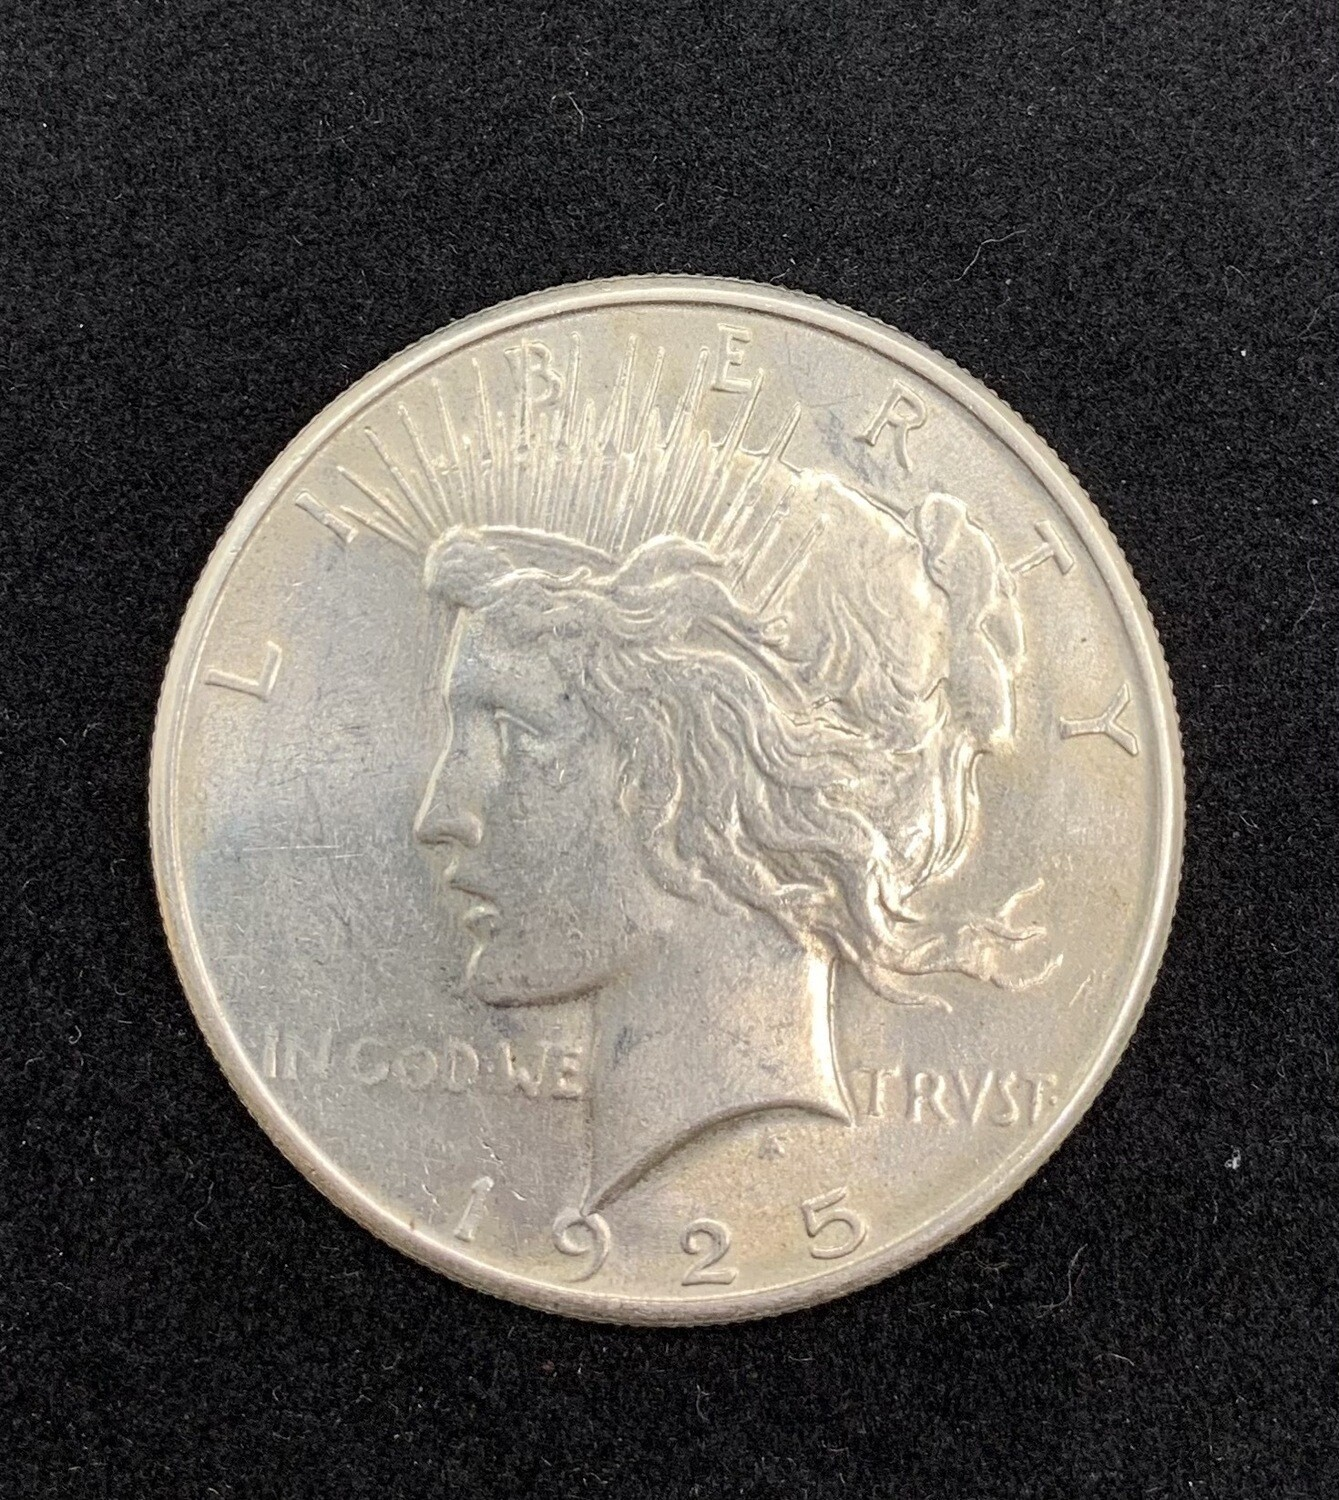 1925 Silver Peace Dollar - Philadelphia Mint